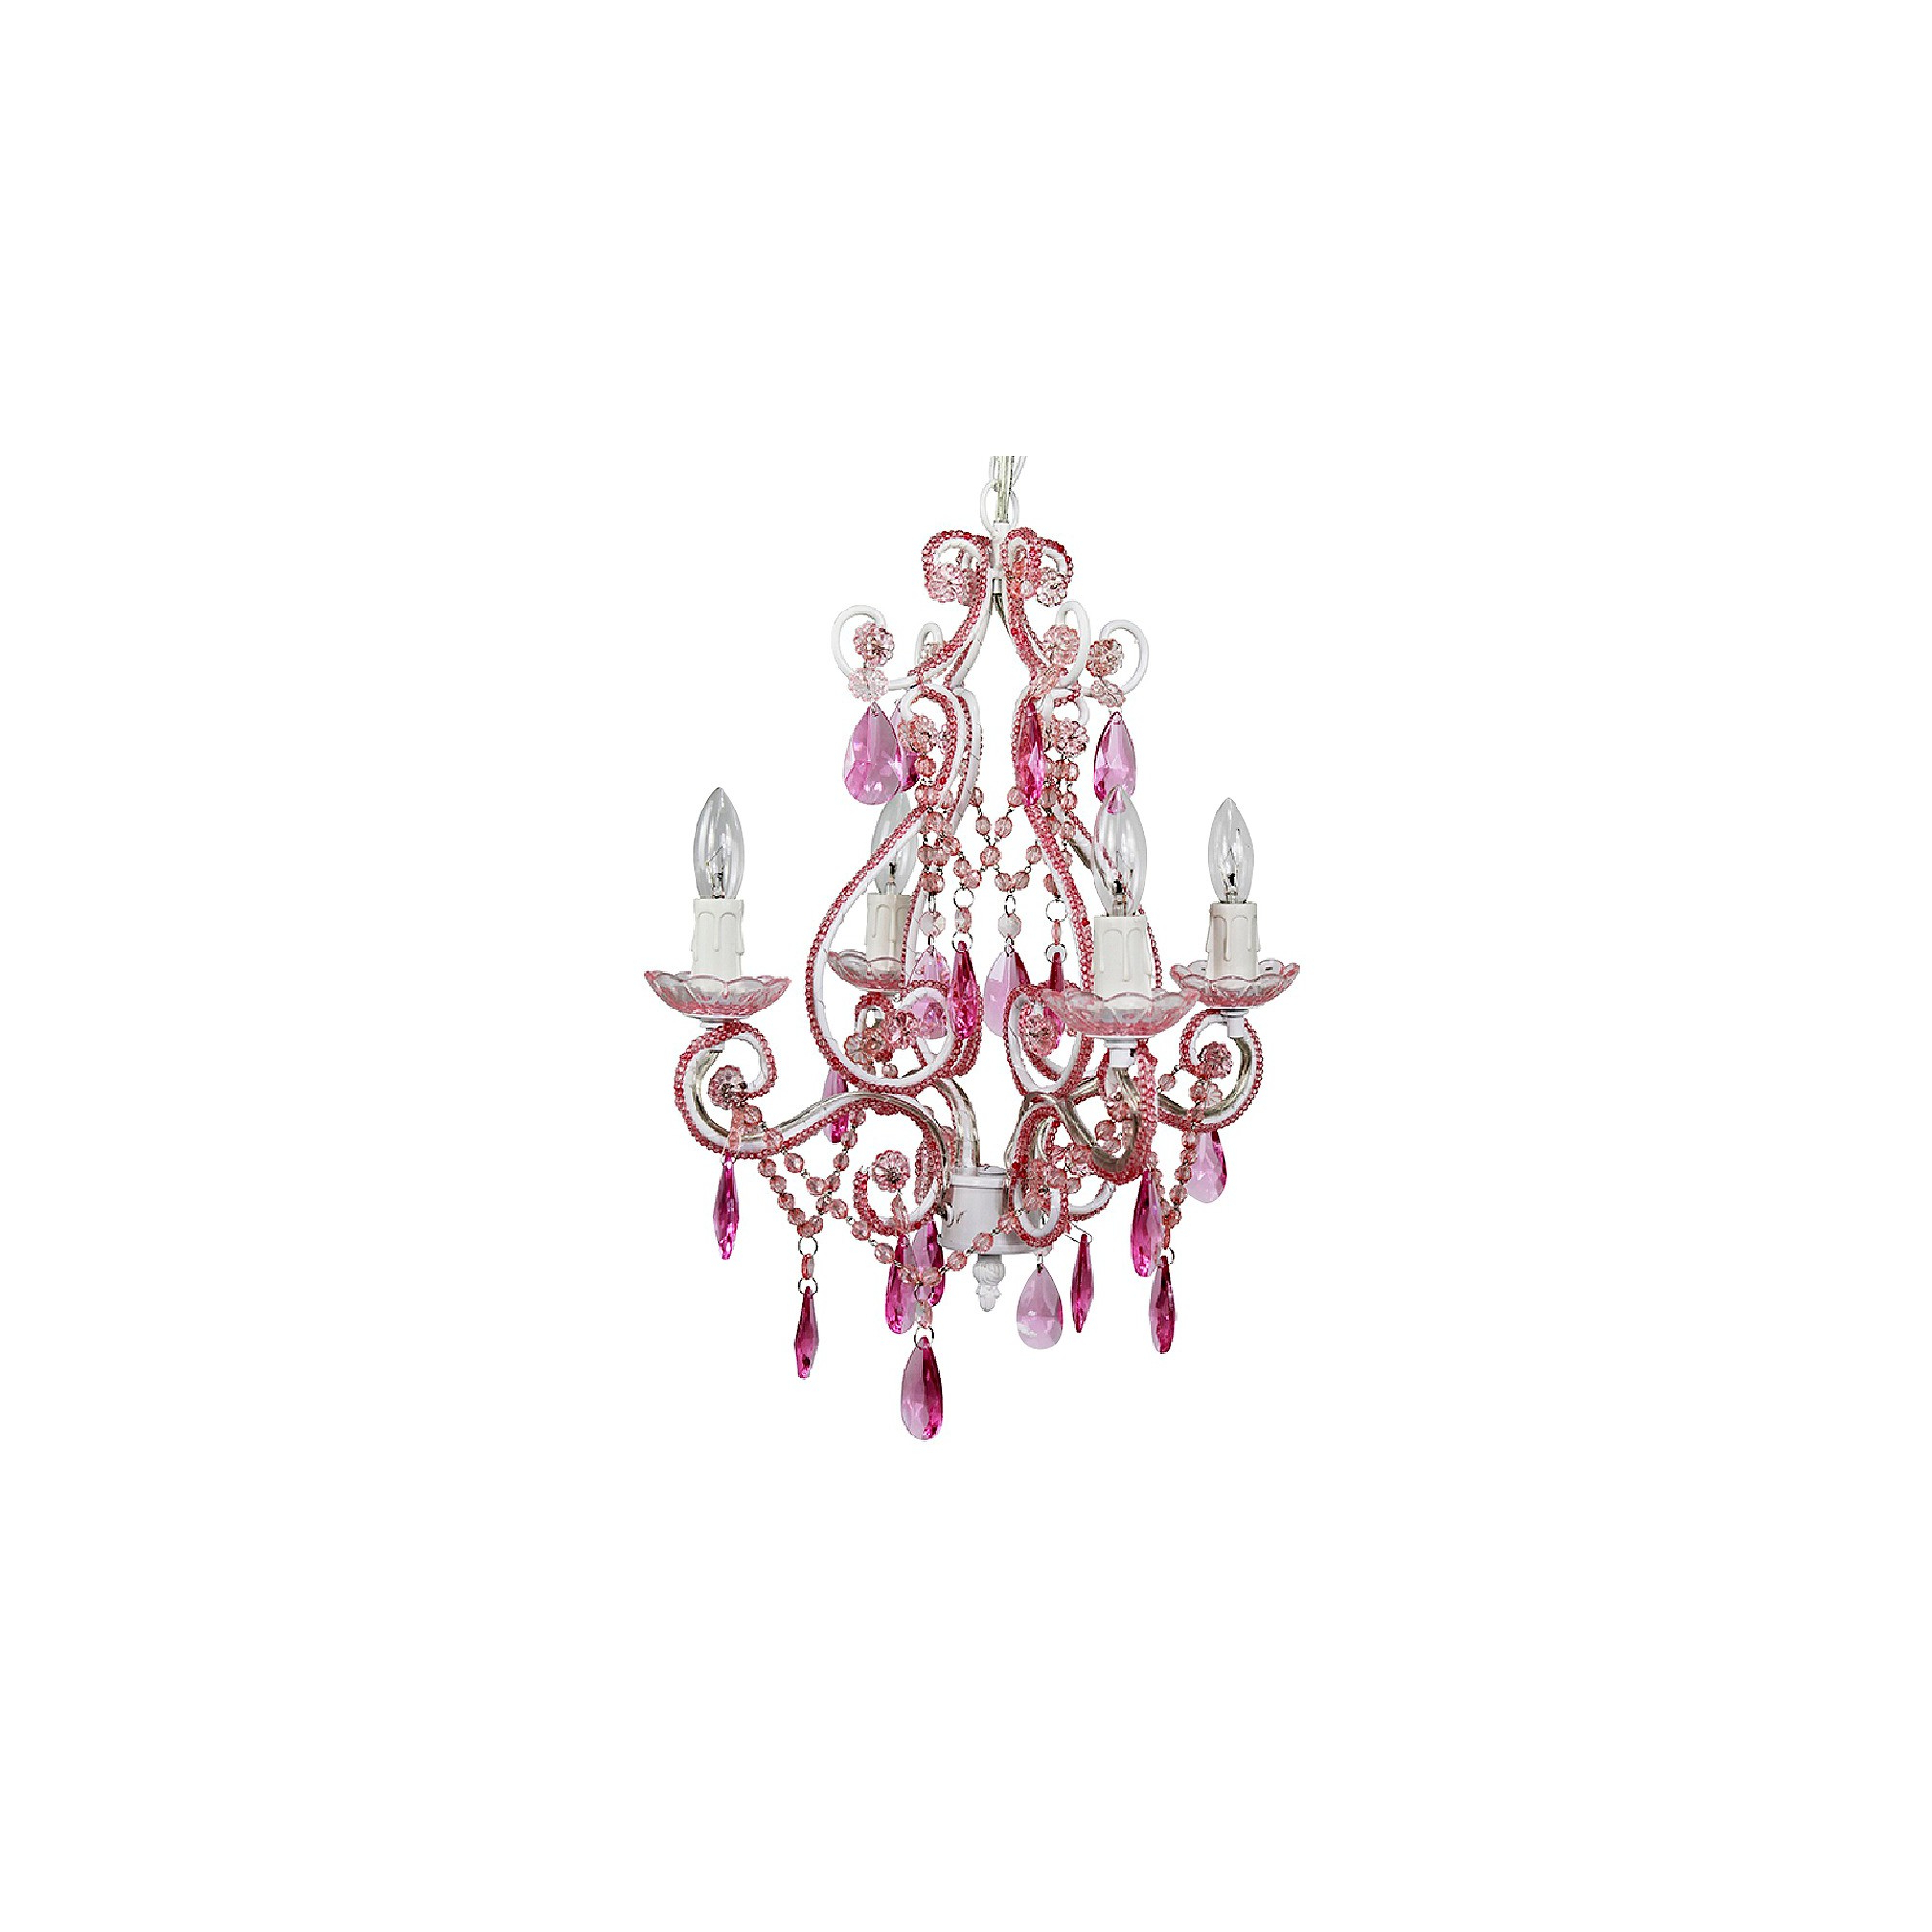 2020 Three Posts Aldora 4 Light Candle Style Chandelier In 2019 With Regard To Aldora 4 Light Candle Style Chandeliers (View 4 of 20)